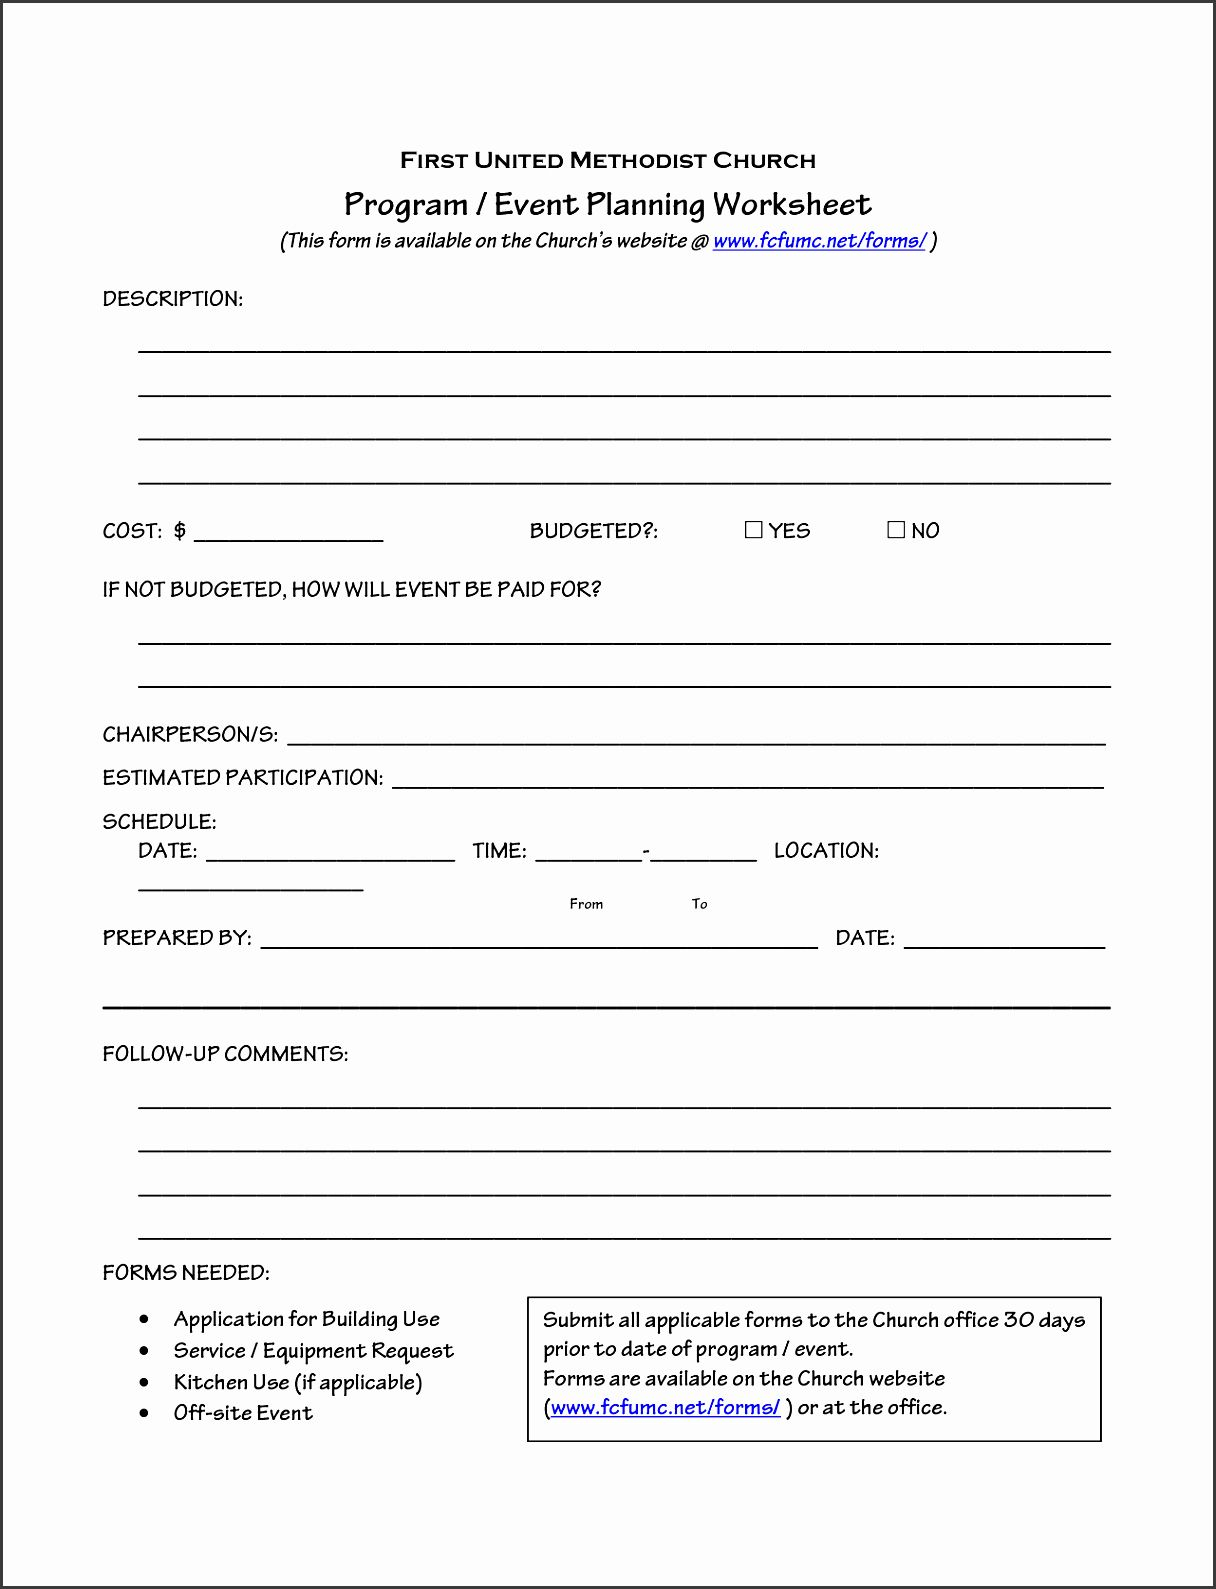 Funeral Planning Checklist Template Fresh 11 Funeral